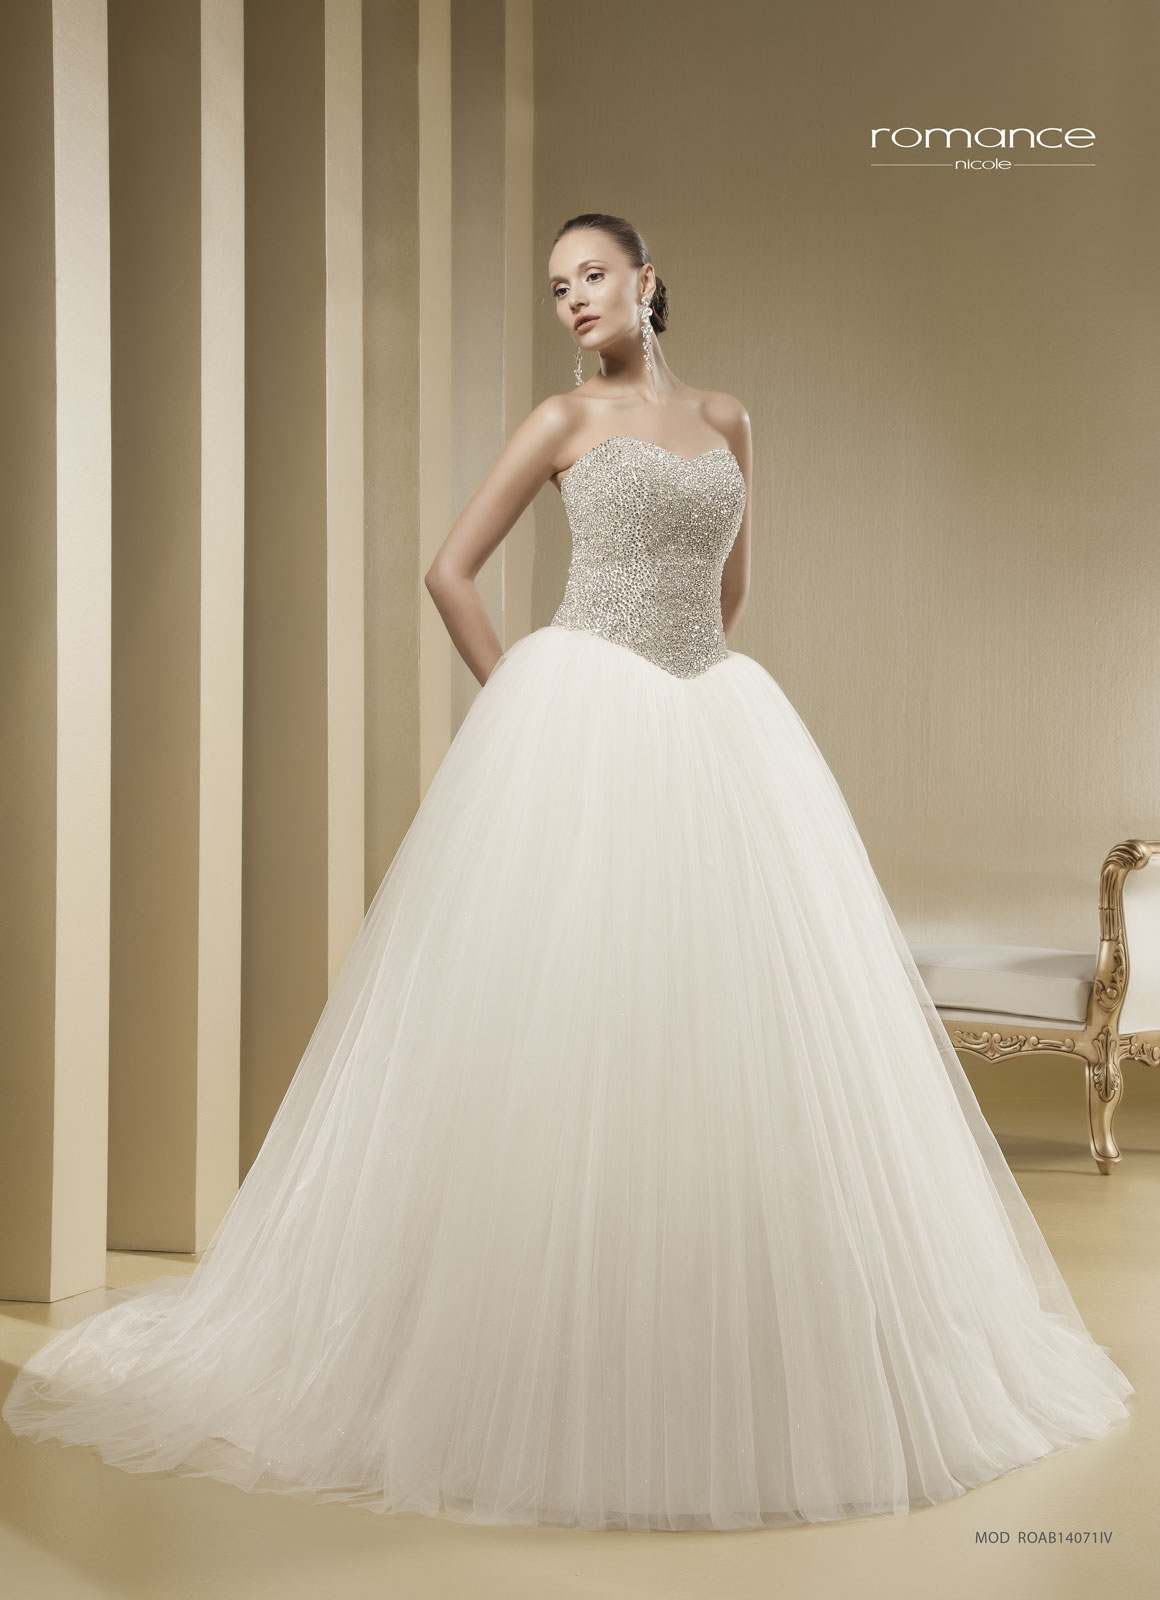 817bc5165eaf Romance Bridal Collection 2014 - Nicole Fashion Group